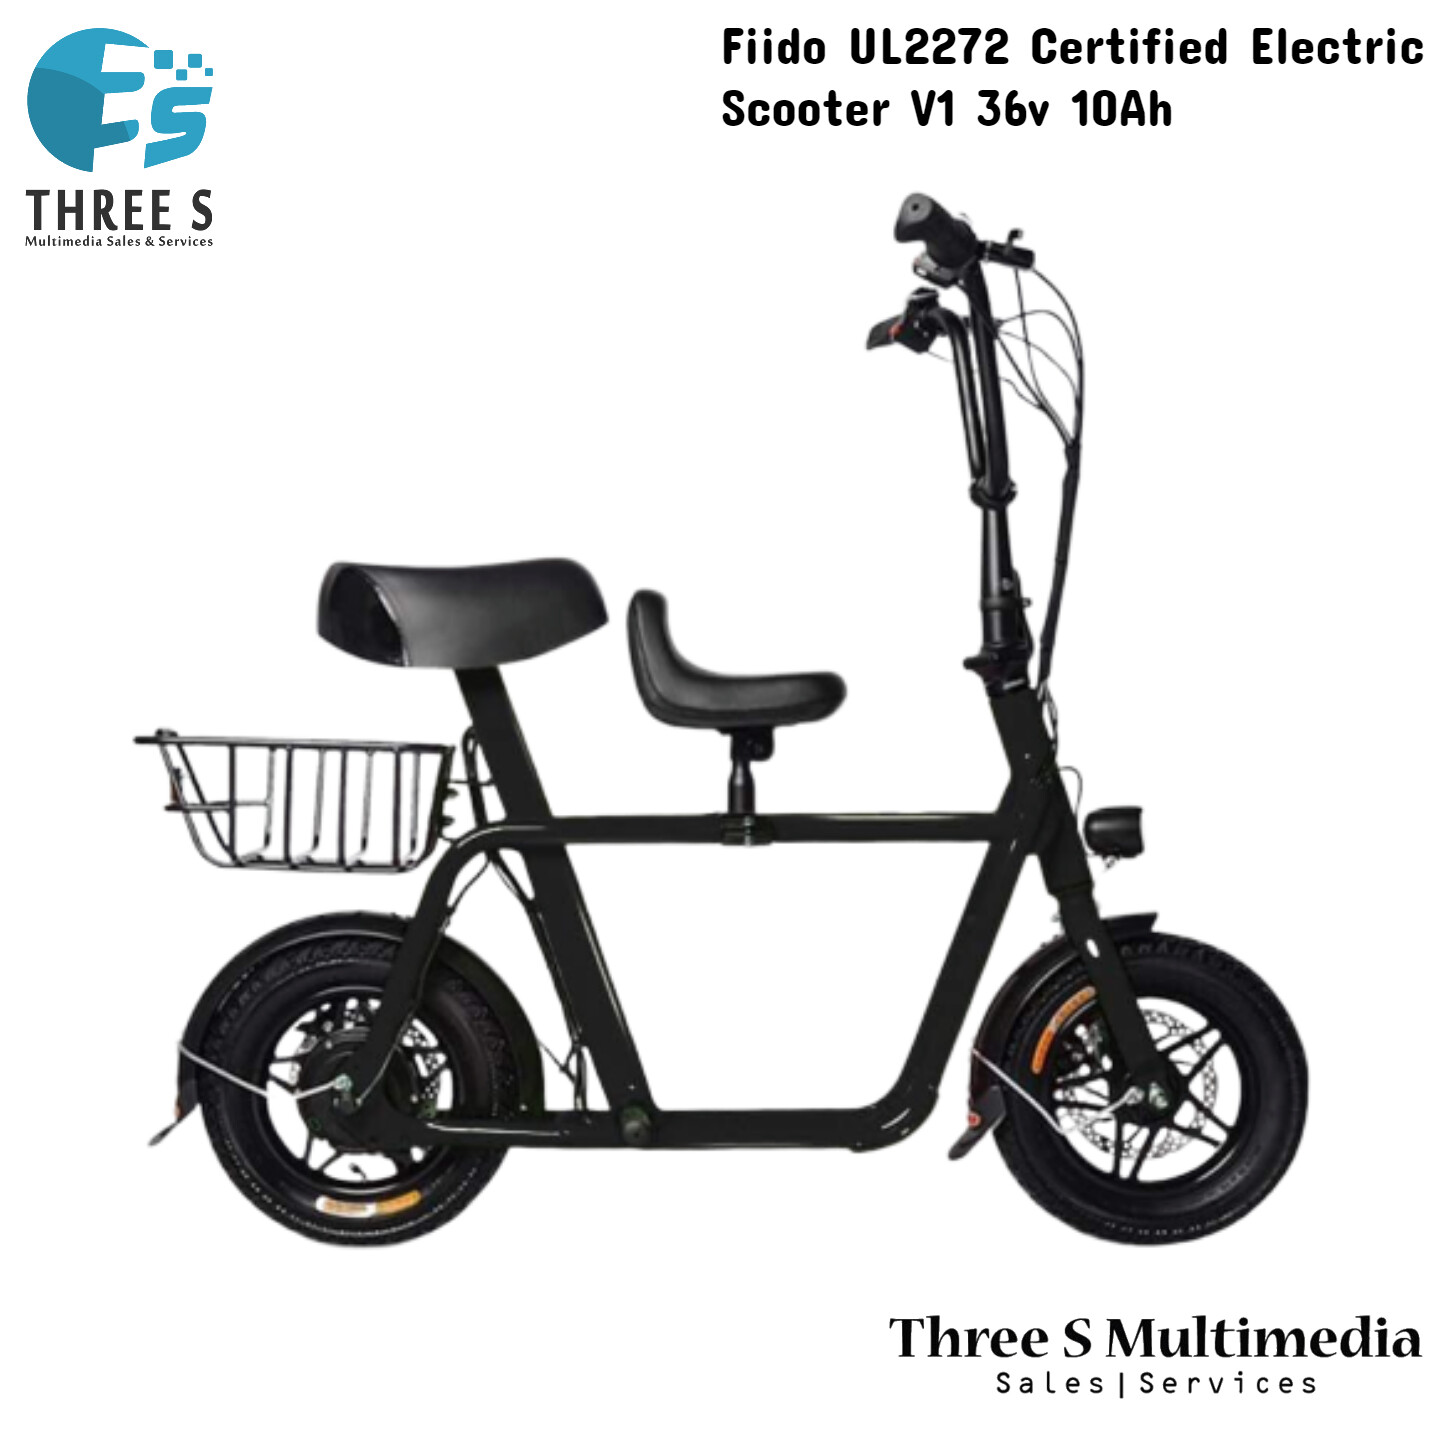 Fiido UL2272 Certified Electric Scooter V1 36v 10Ah